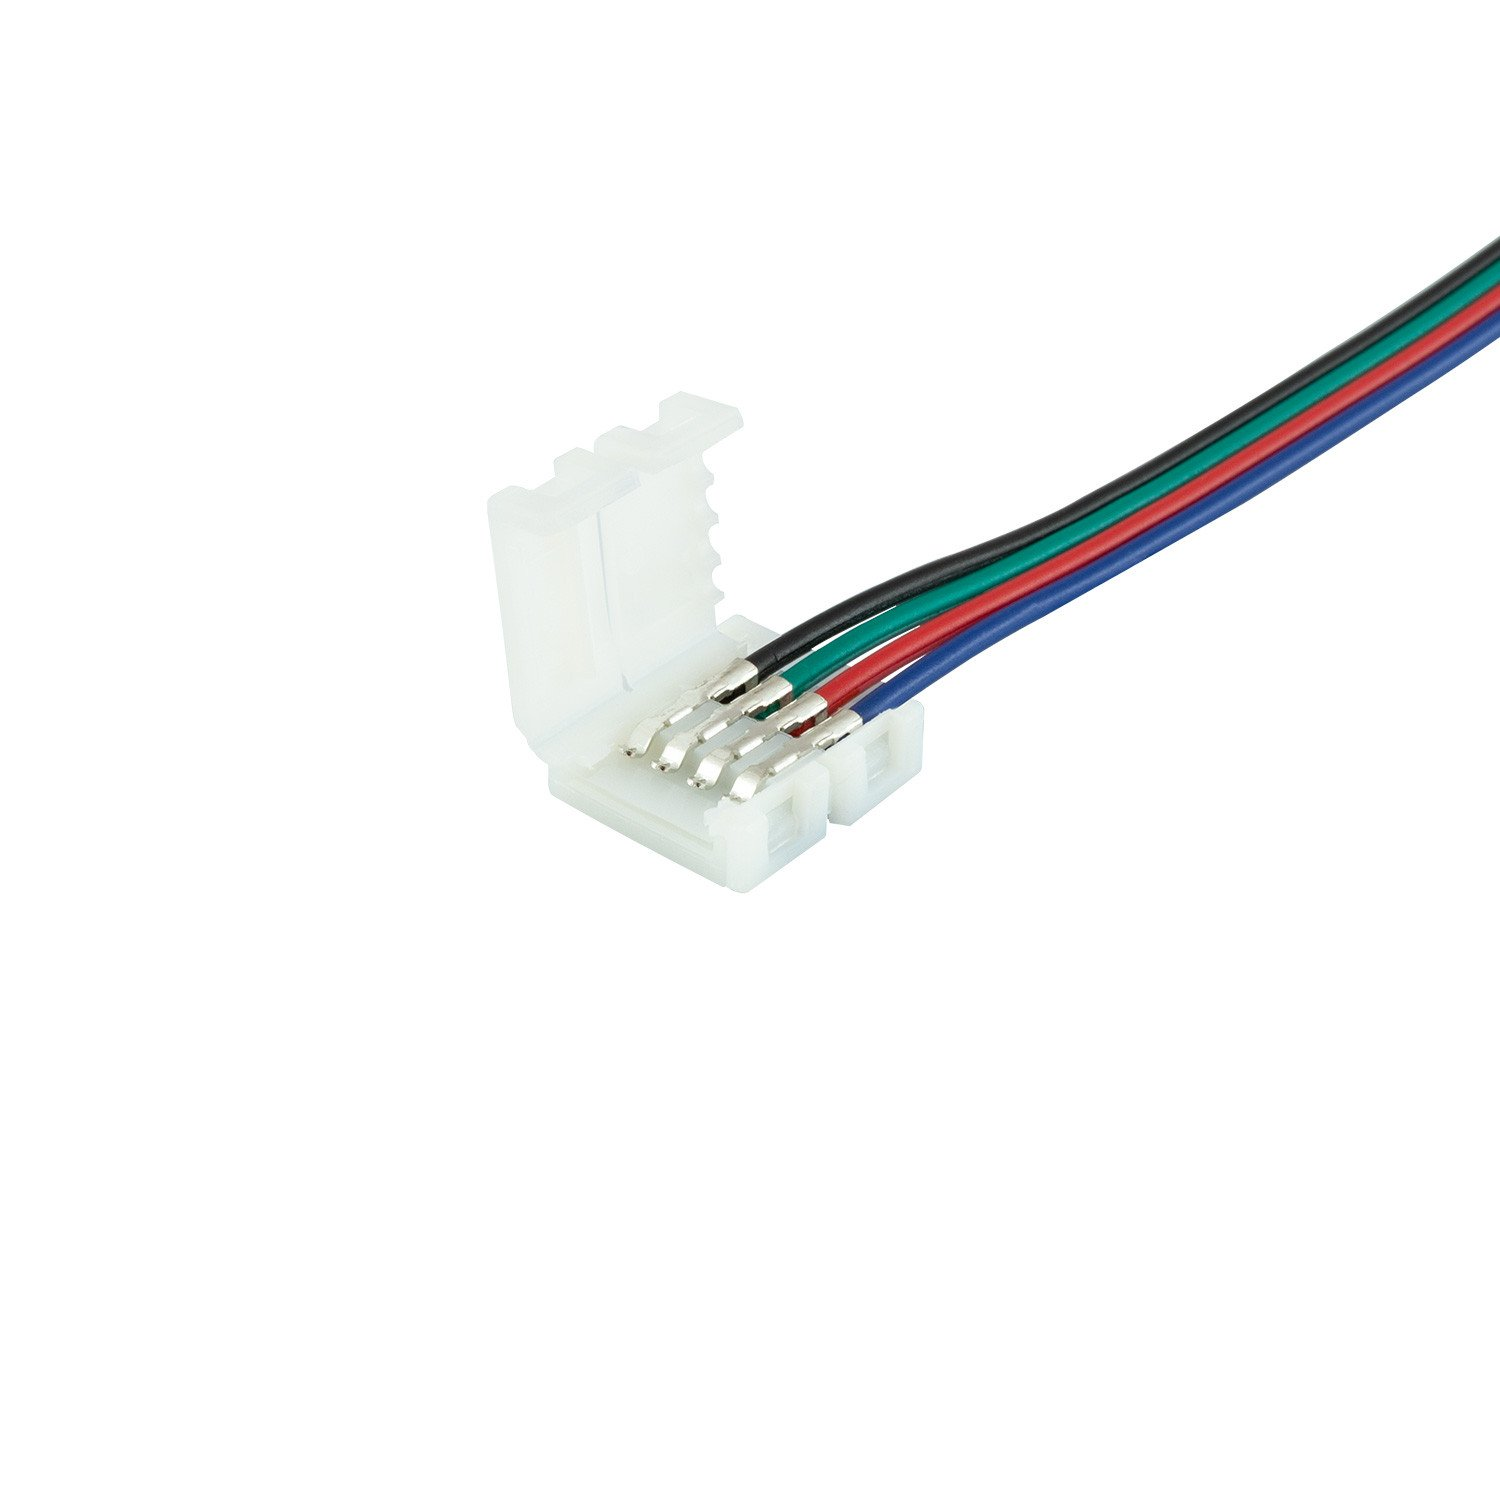 Fast Connector Cable LED Strip 12V RGB 10mm 4 PIN